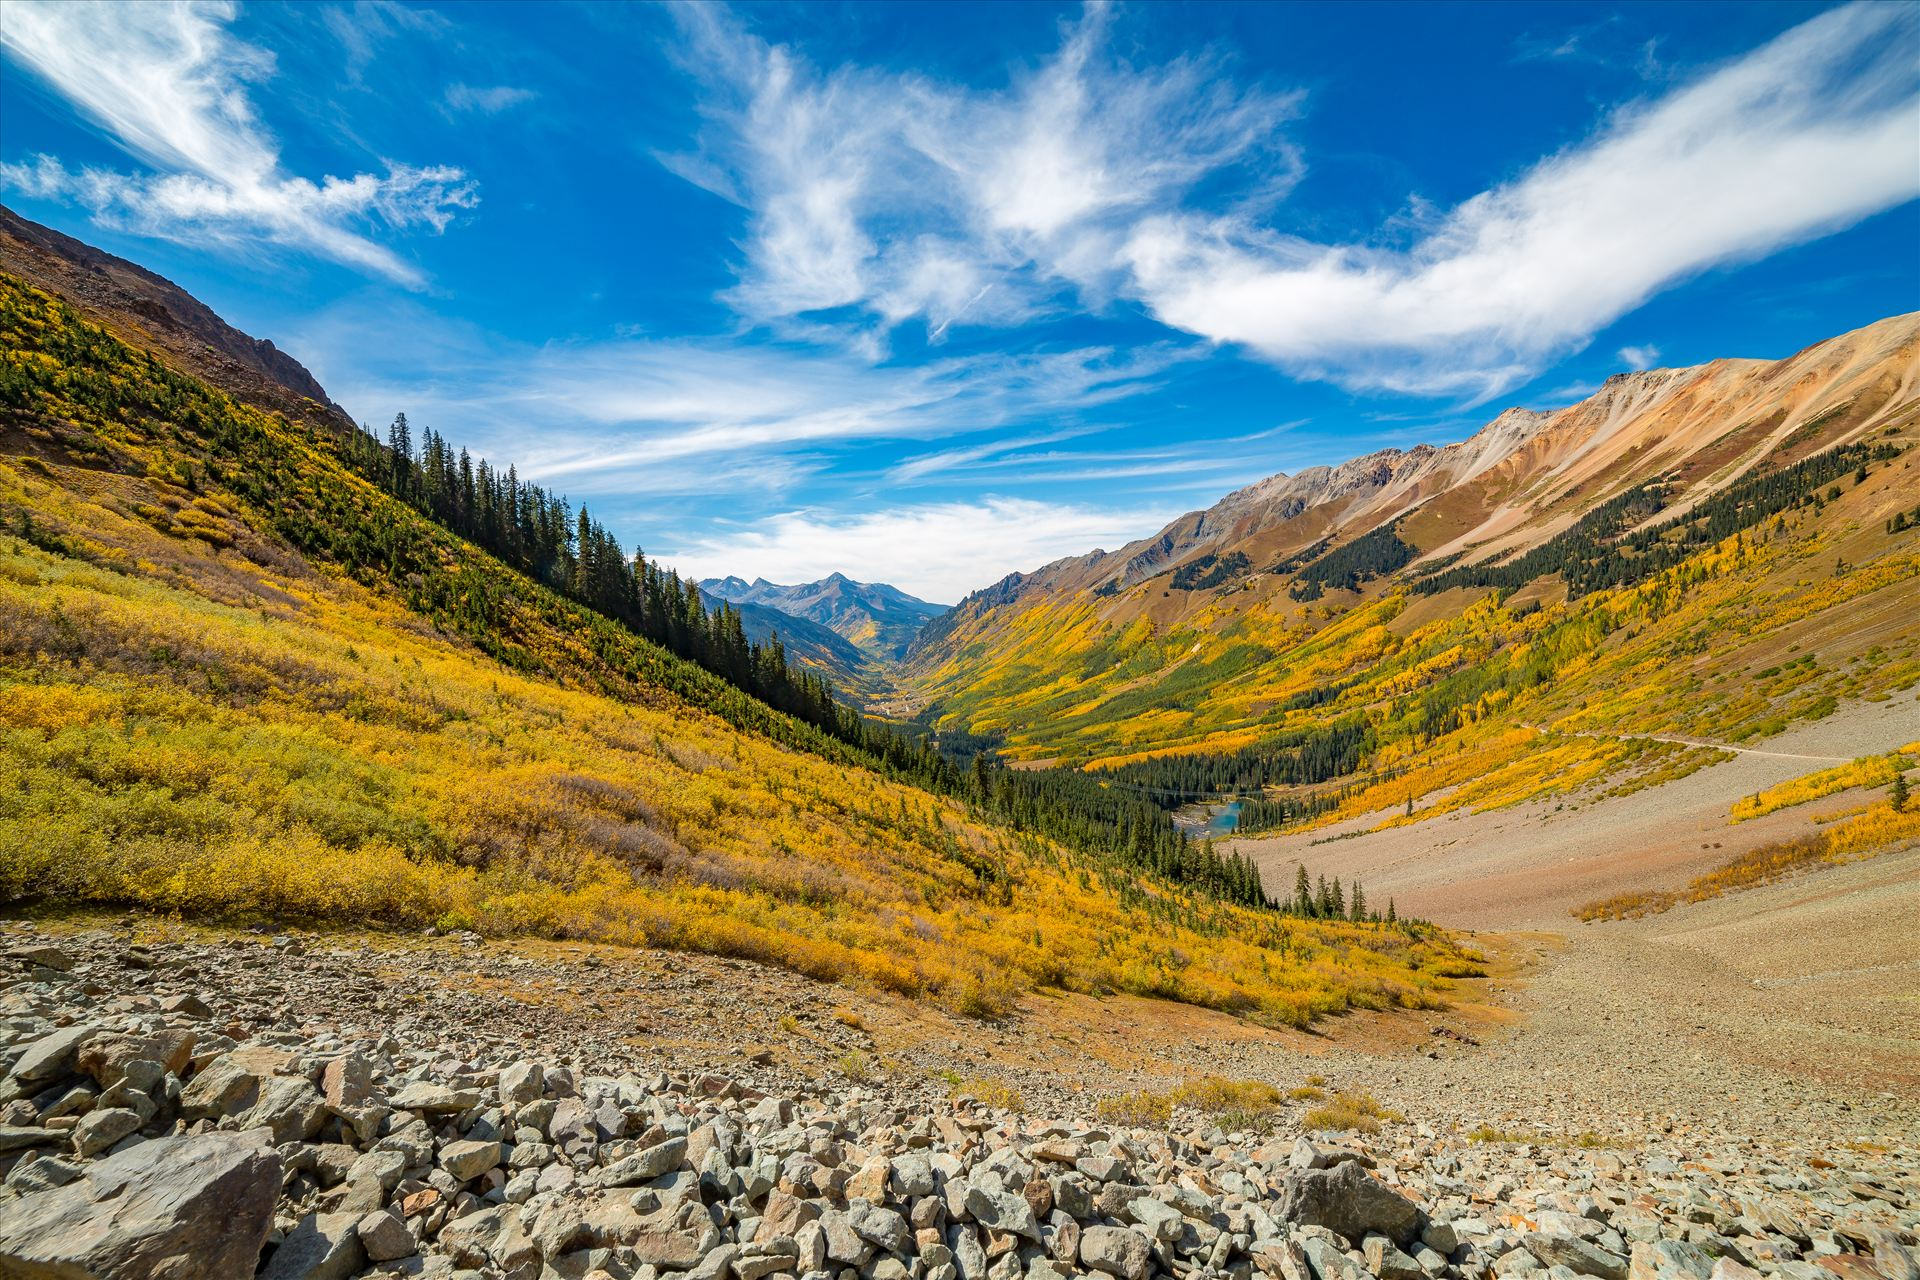 Rocky Ophir Pass Looking towards the mining town of Ophir, Rubble from the slowly eroding mountains make up most of the terrain on Ophir Pass,. by Scott Smith Photos